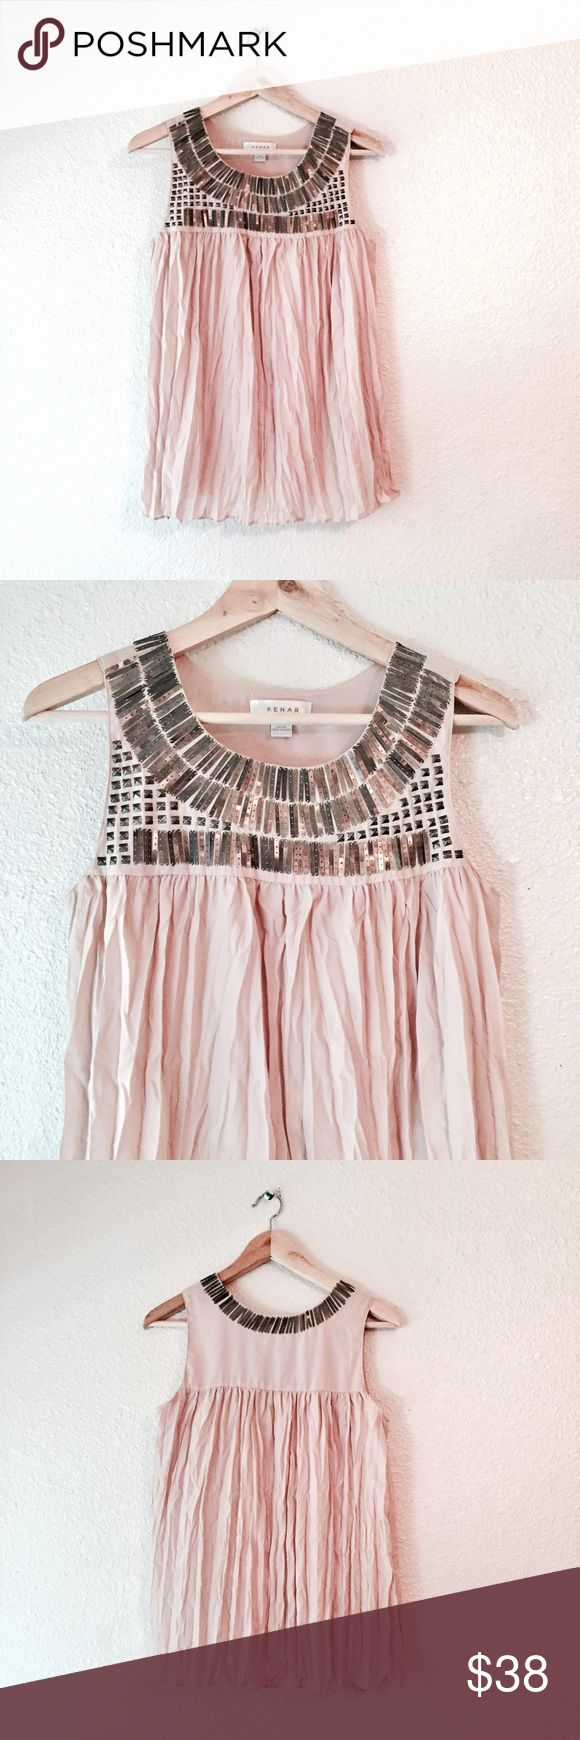 Kenar rose blush pink tank top metallic sequin S Amazing Kenar tank top. Super feminine and edgy at the same time! Light pink muted blush color. Ruffle crinkle tank that is so Flowy. Fully lined, so it's not see through. Silver gunmetal sequins are at the top  which gig every this an edgy vibe. Excellent used condition. Size small. Kenar Tops Tank Tops